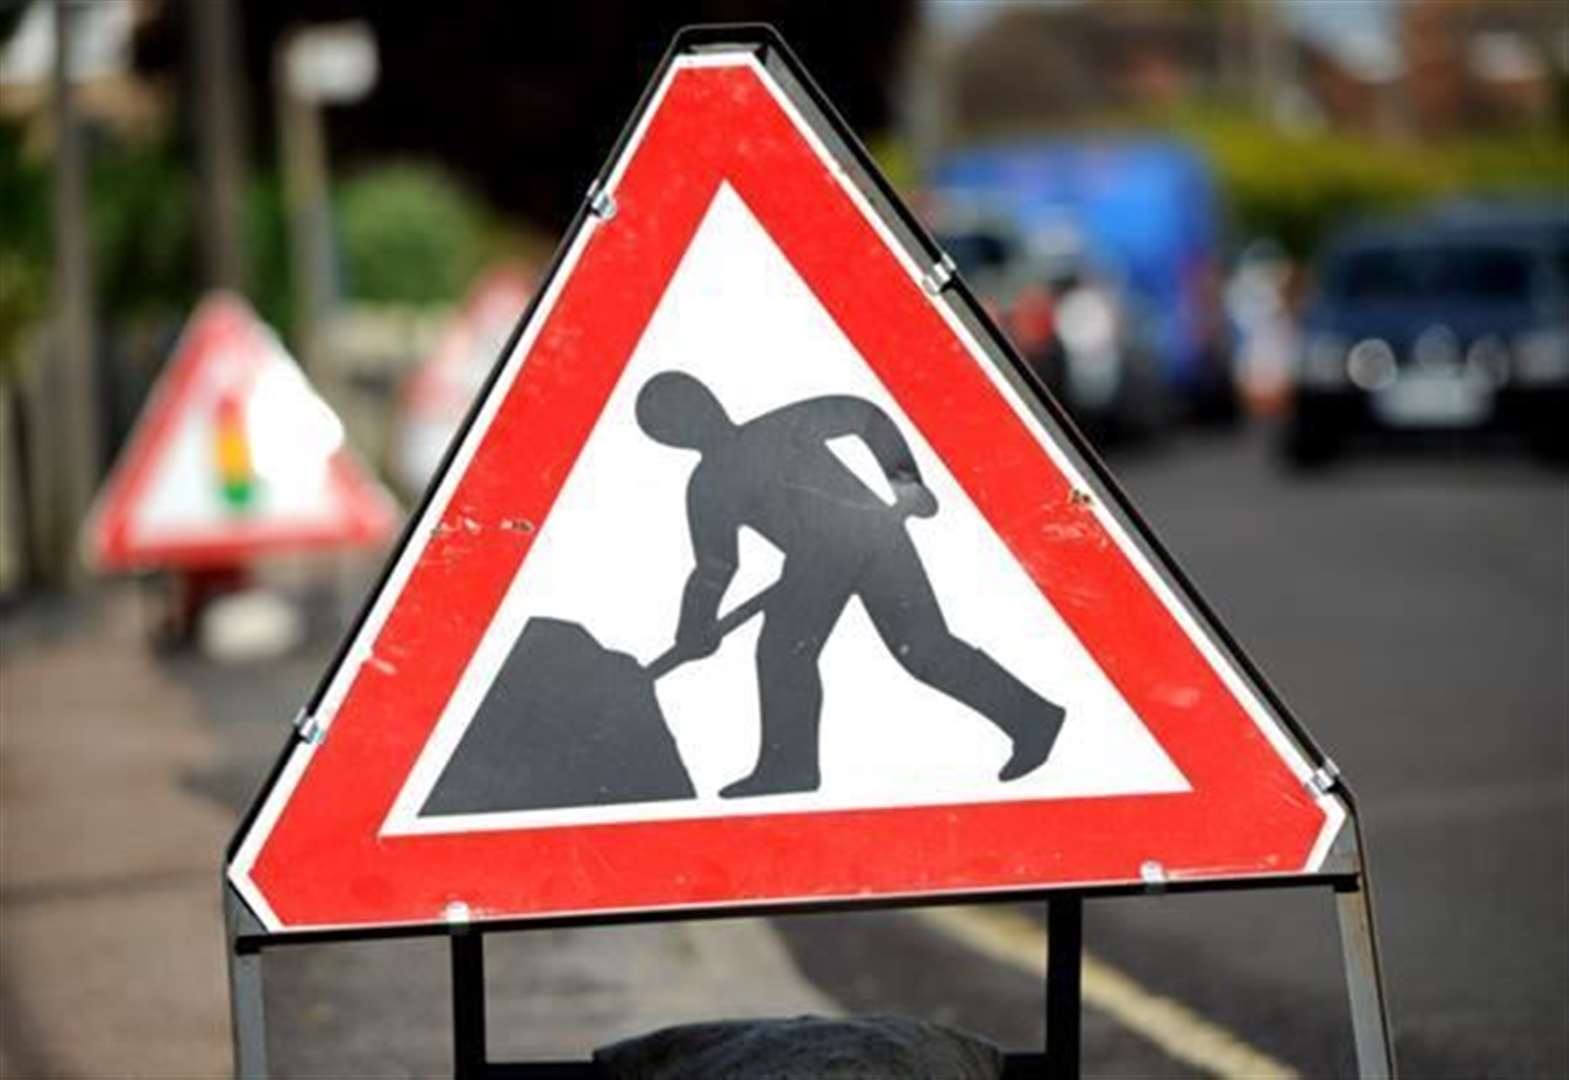 County councillors to get £26,666 to fund minor highways projects in budget upgrade